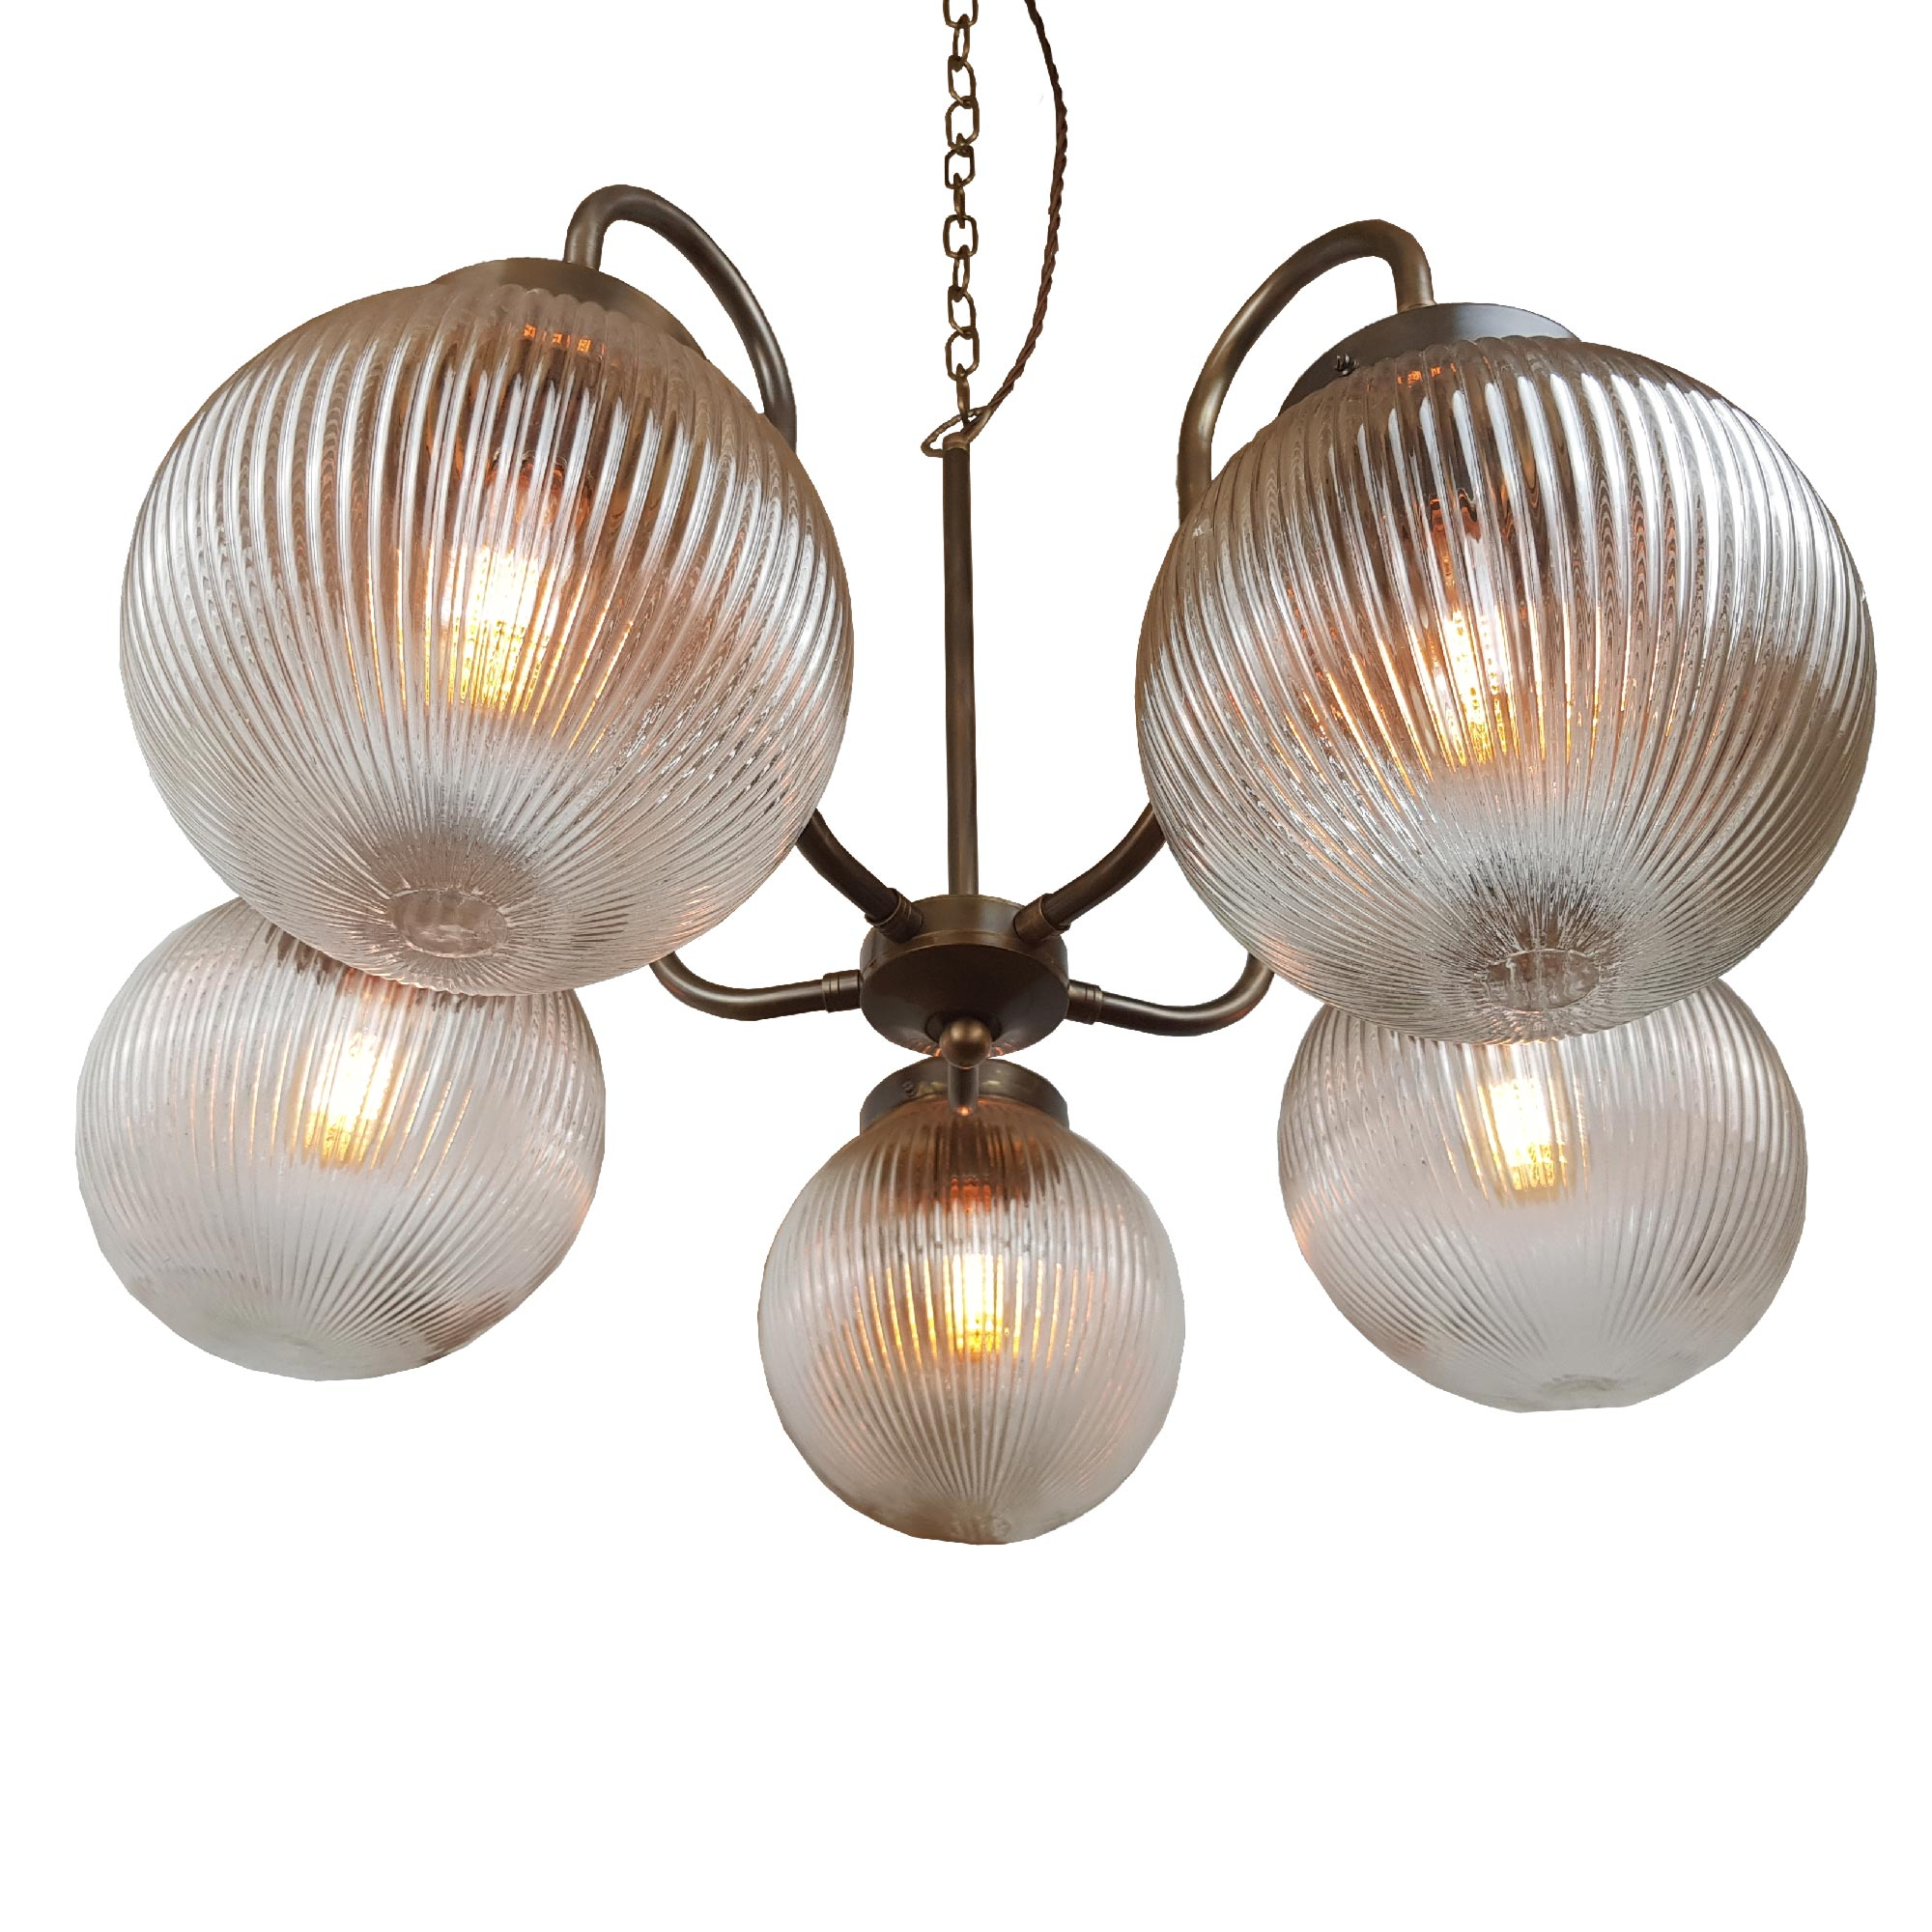 5 Light Brass Chandelier with Prismatic Glass Globes